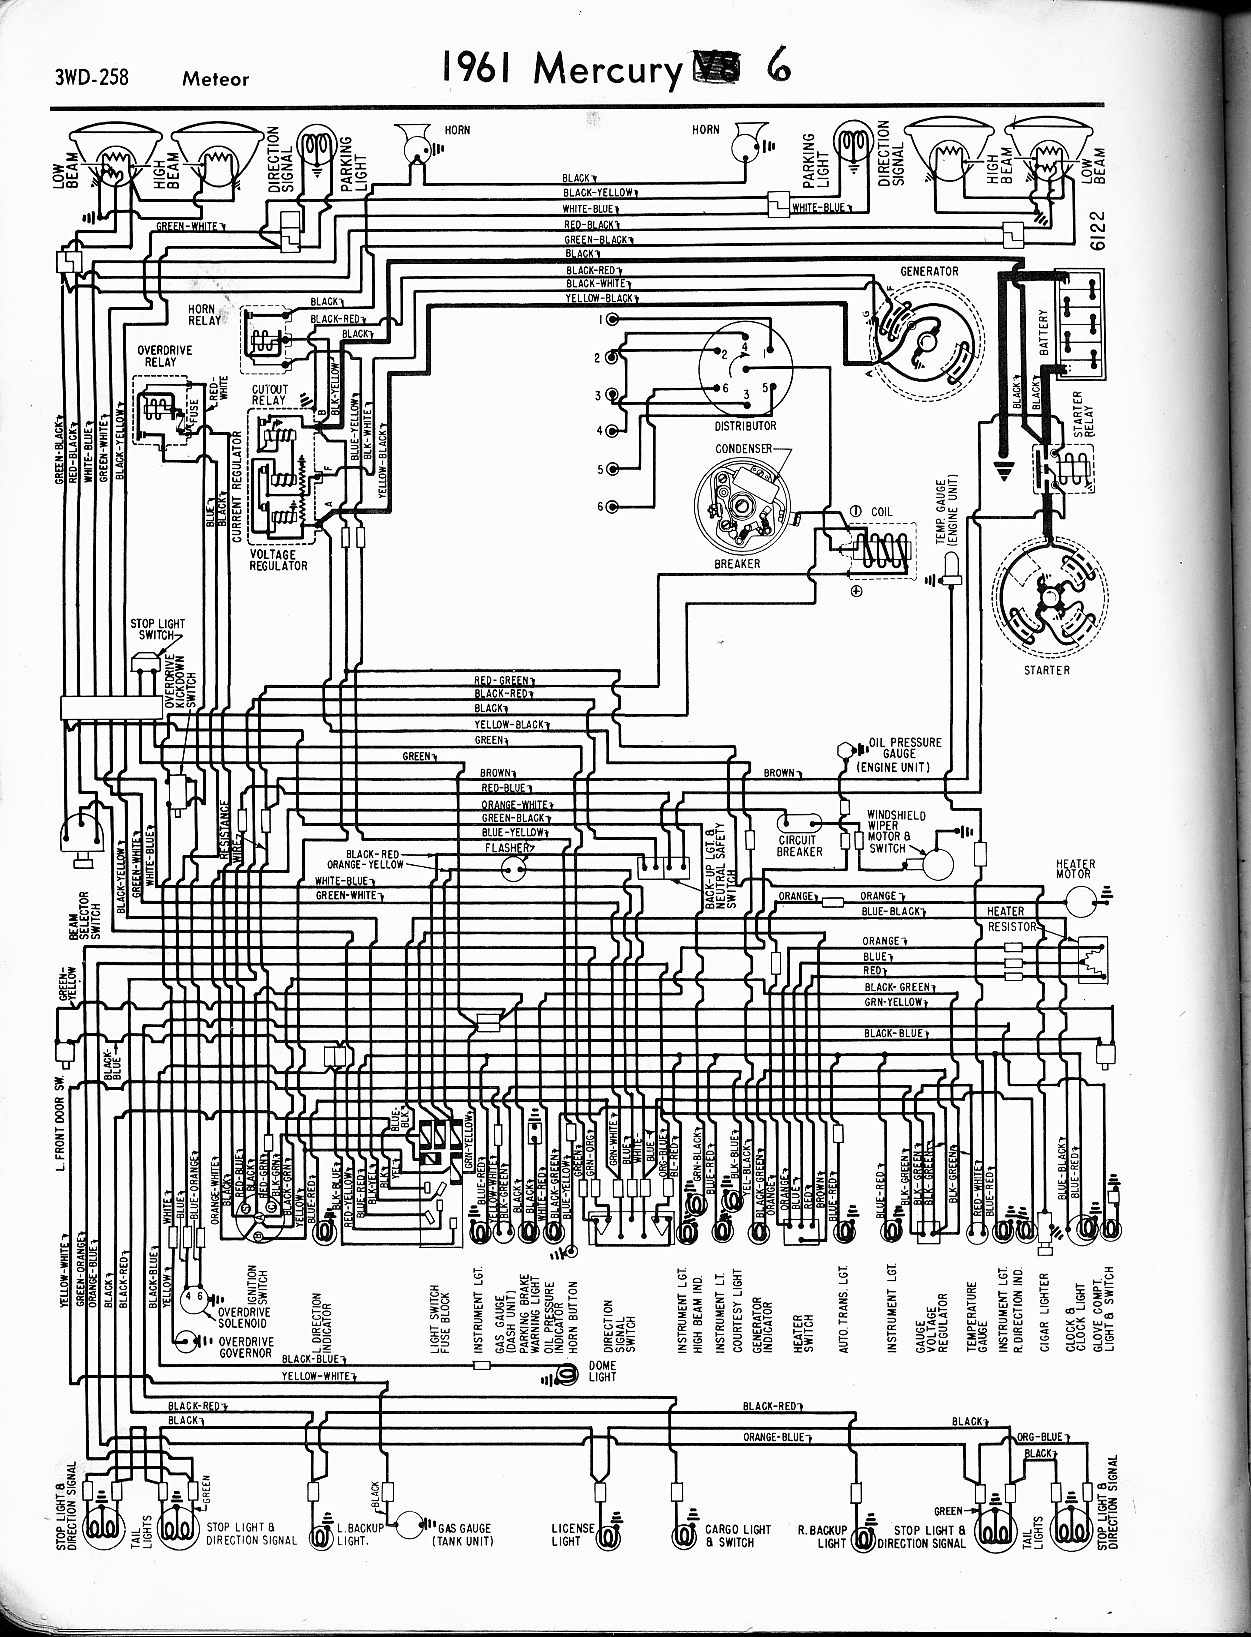 Mercury Wiring Diagrams The Old Car Manual Project Mercury Outboard Wiring  Color Code 56 Mercury Wiring Diagram